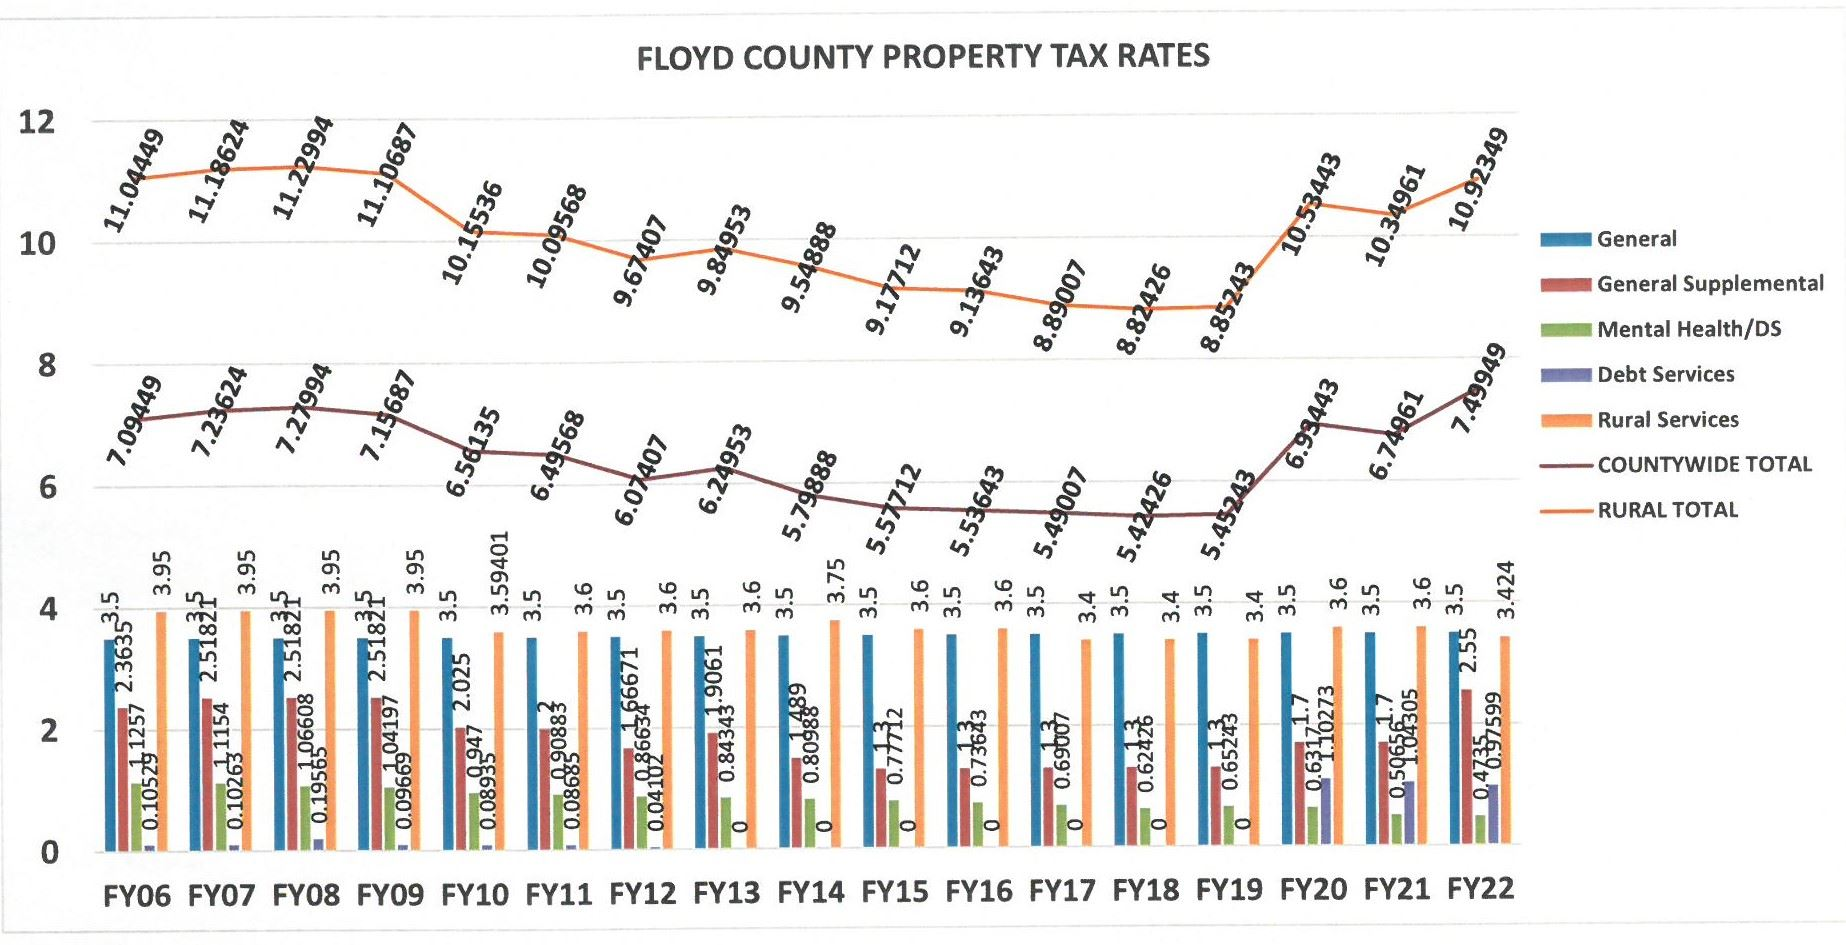 FY22 Property Tax Rates